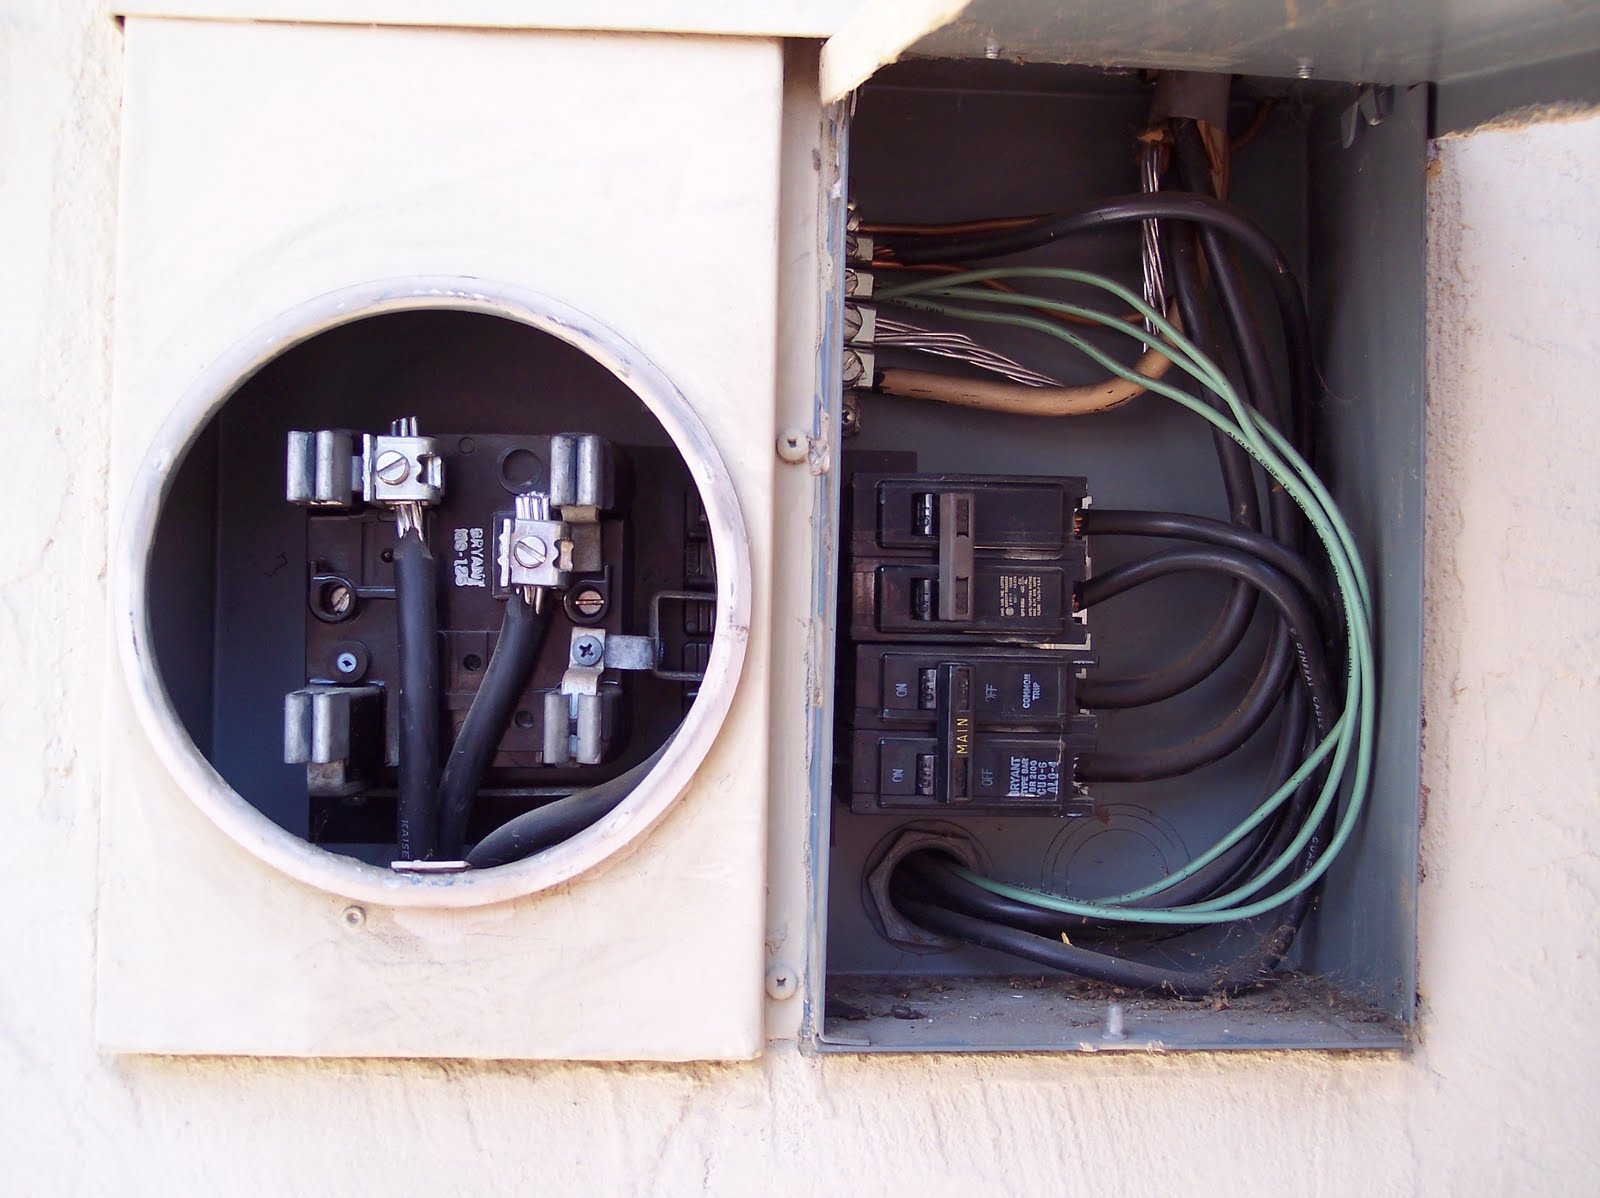 hight resolution of electric meter bryant ms 125 needs the load socket and bus bar replaced aluminum wires from main